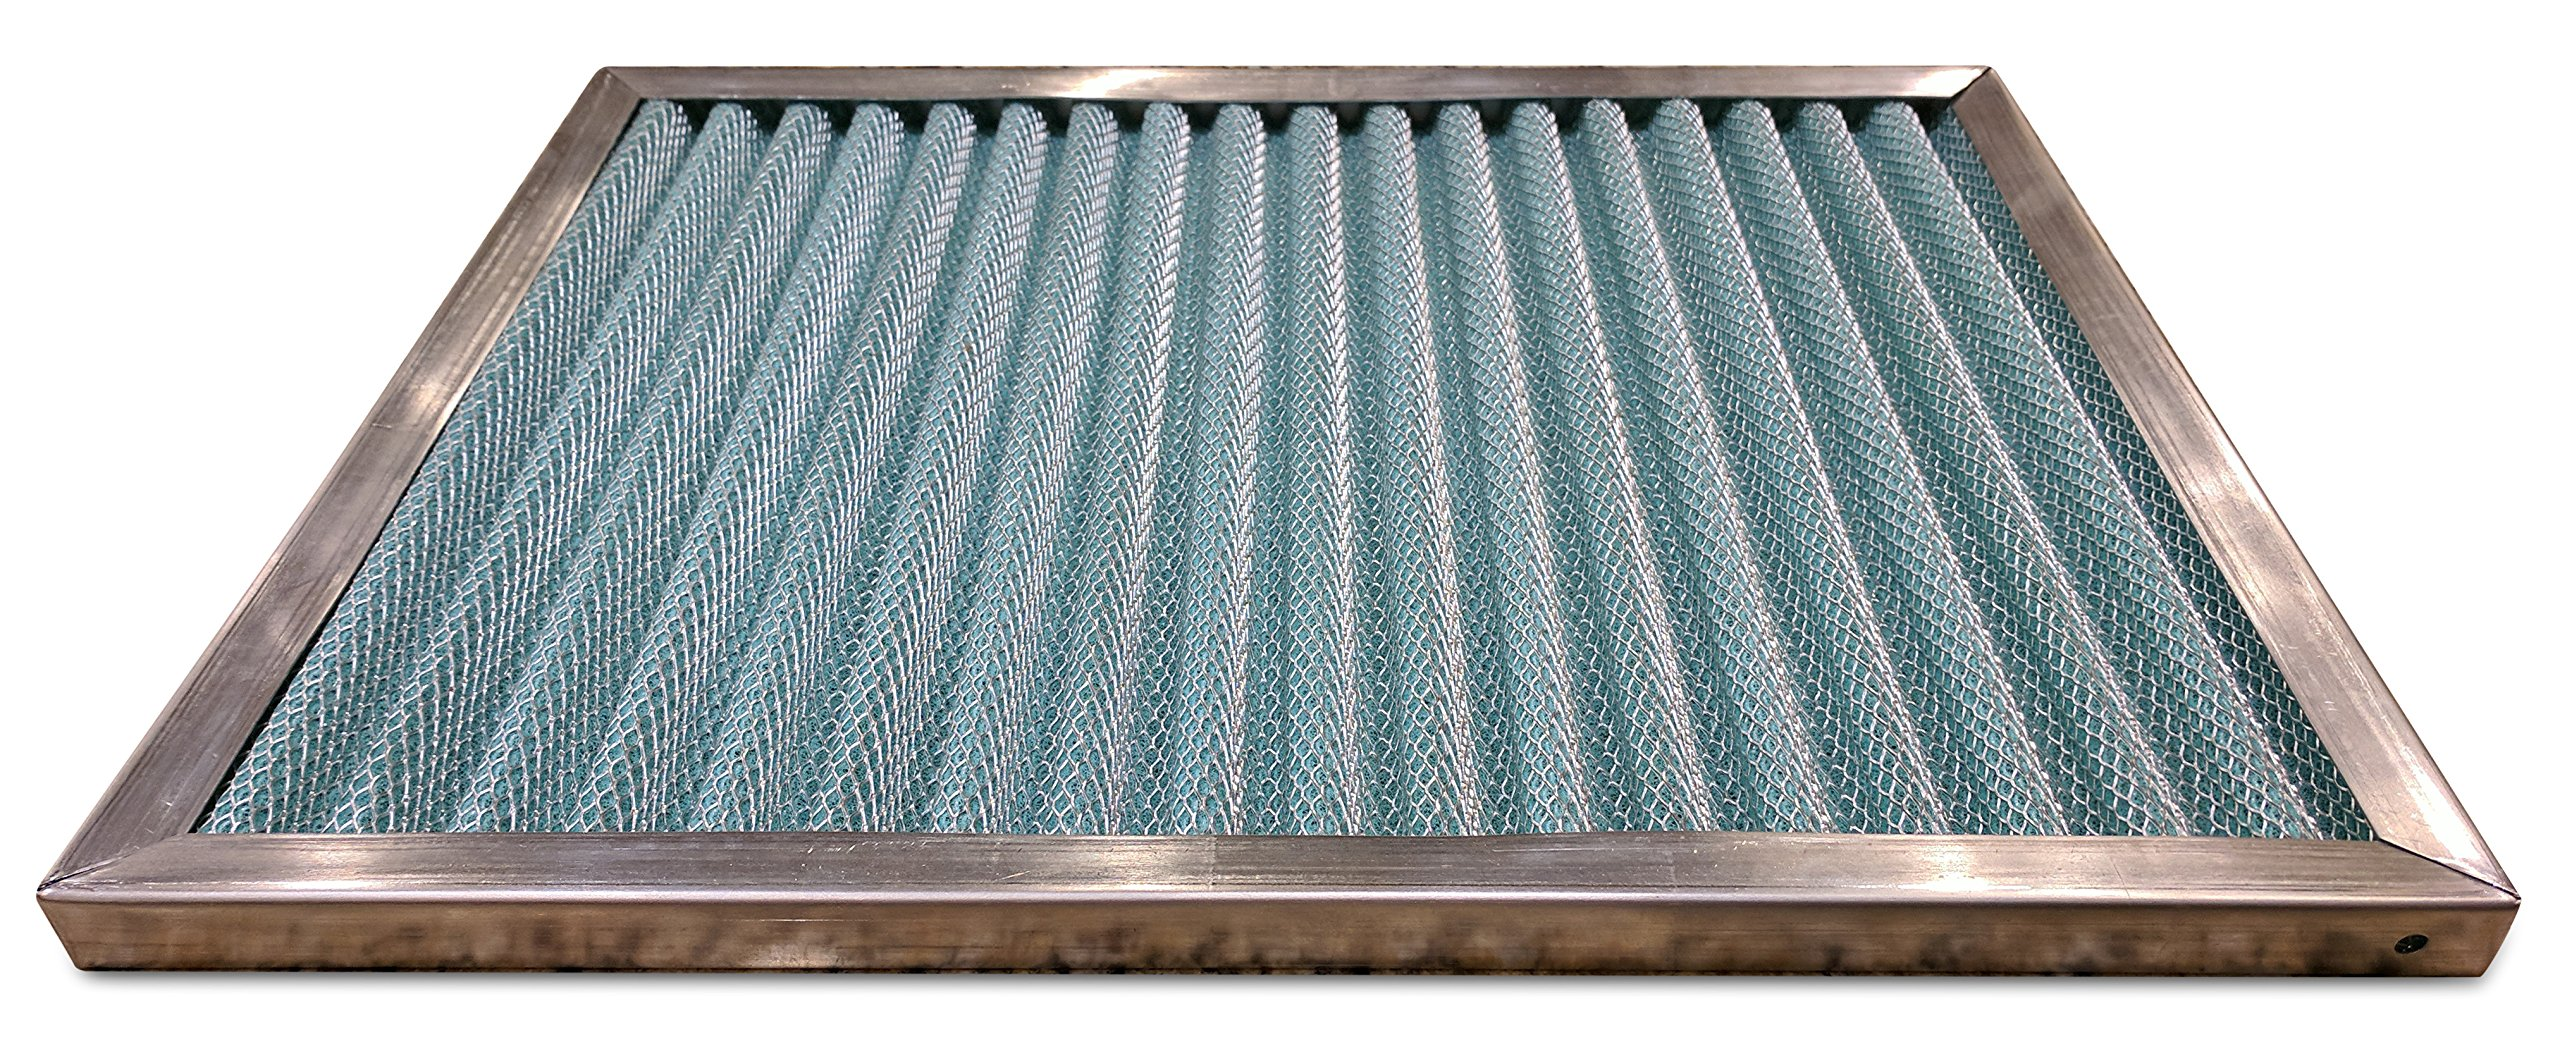 Permanent Air Filter Replacement | Permafoam | Washable | HVAC Conditioner Purifier | Purify Allergens for Cleaner, Healthier Home Environment | Easy to Install | Made in The USA (16x25x1) by Trophy Air